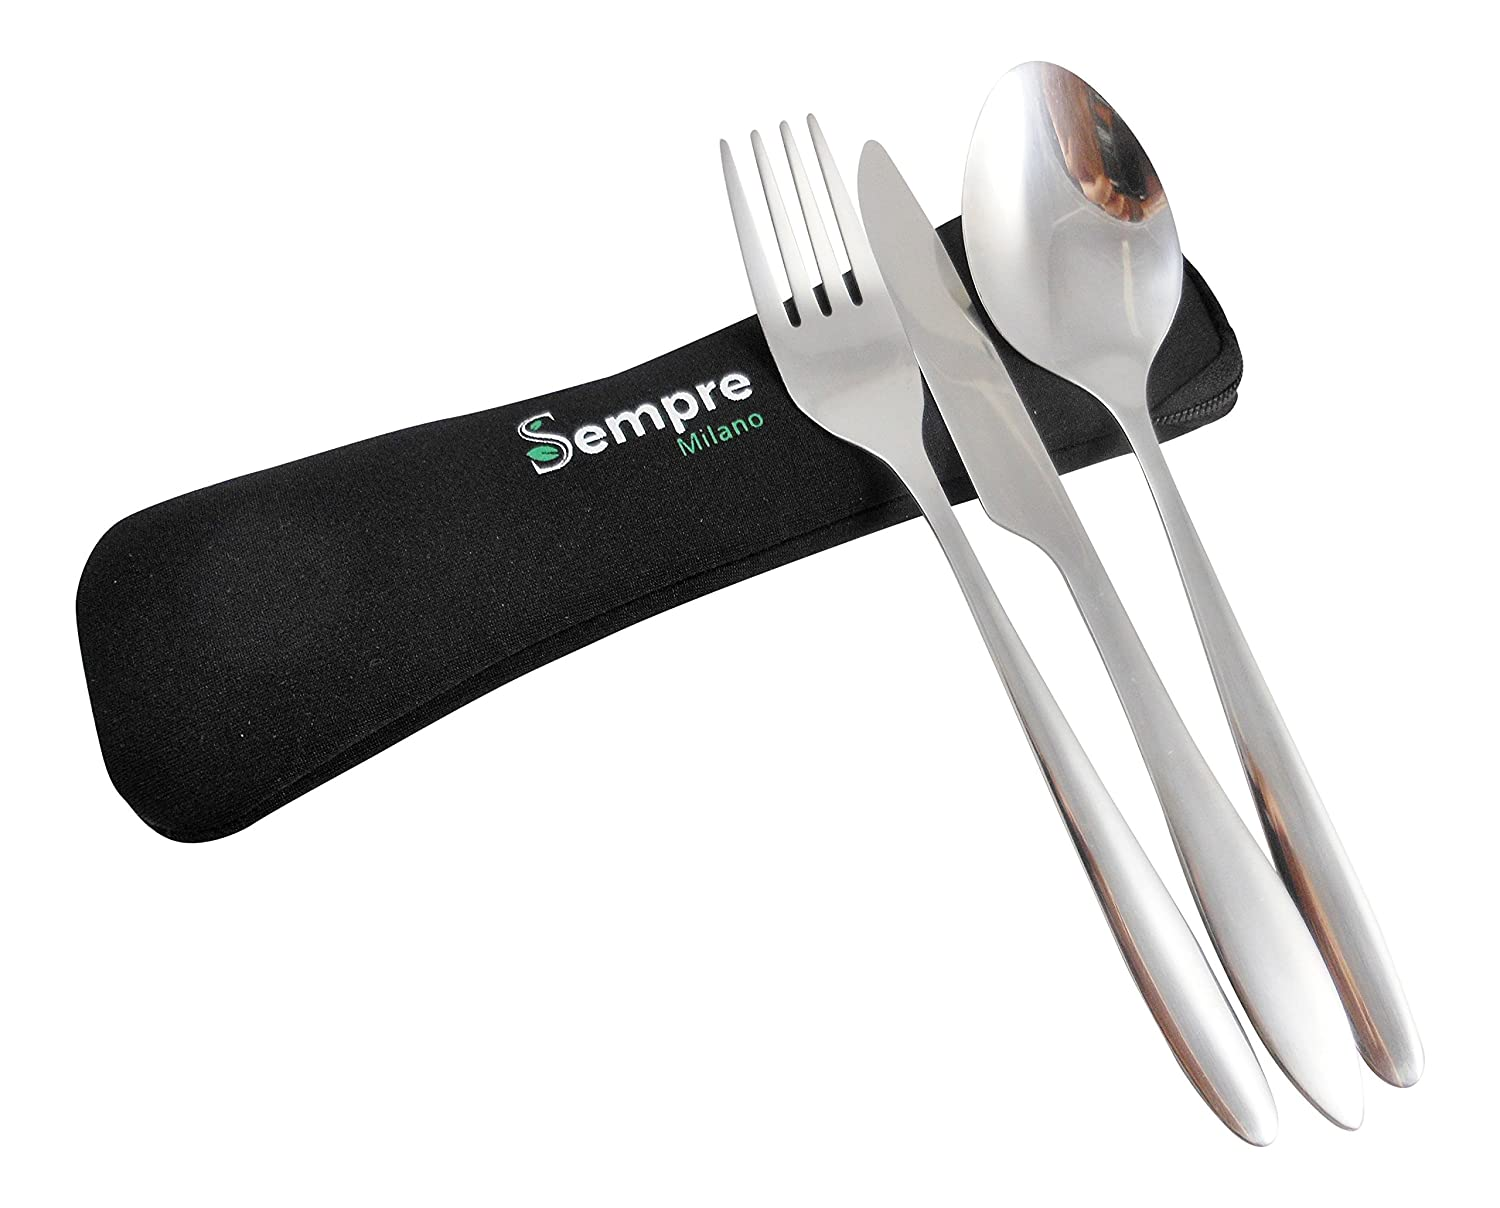 amazon com sempre 3 piece stainless steel utensils to go knife amazon com sempre 3 piece stainless steel utensils to go knife fork spoon portable travel or camping cutlery mess kit with lightweight neoprene pouch